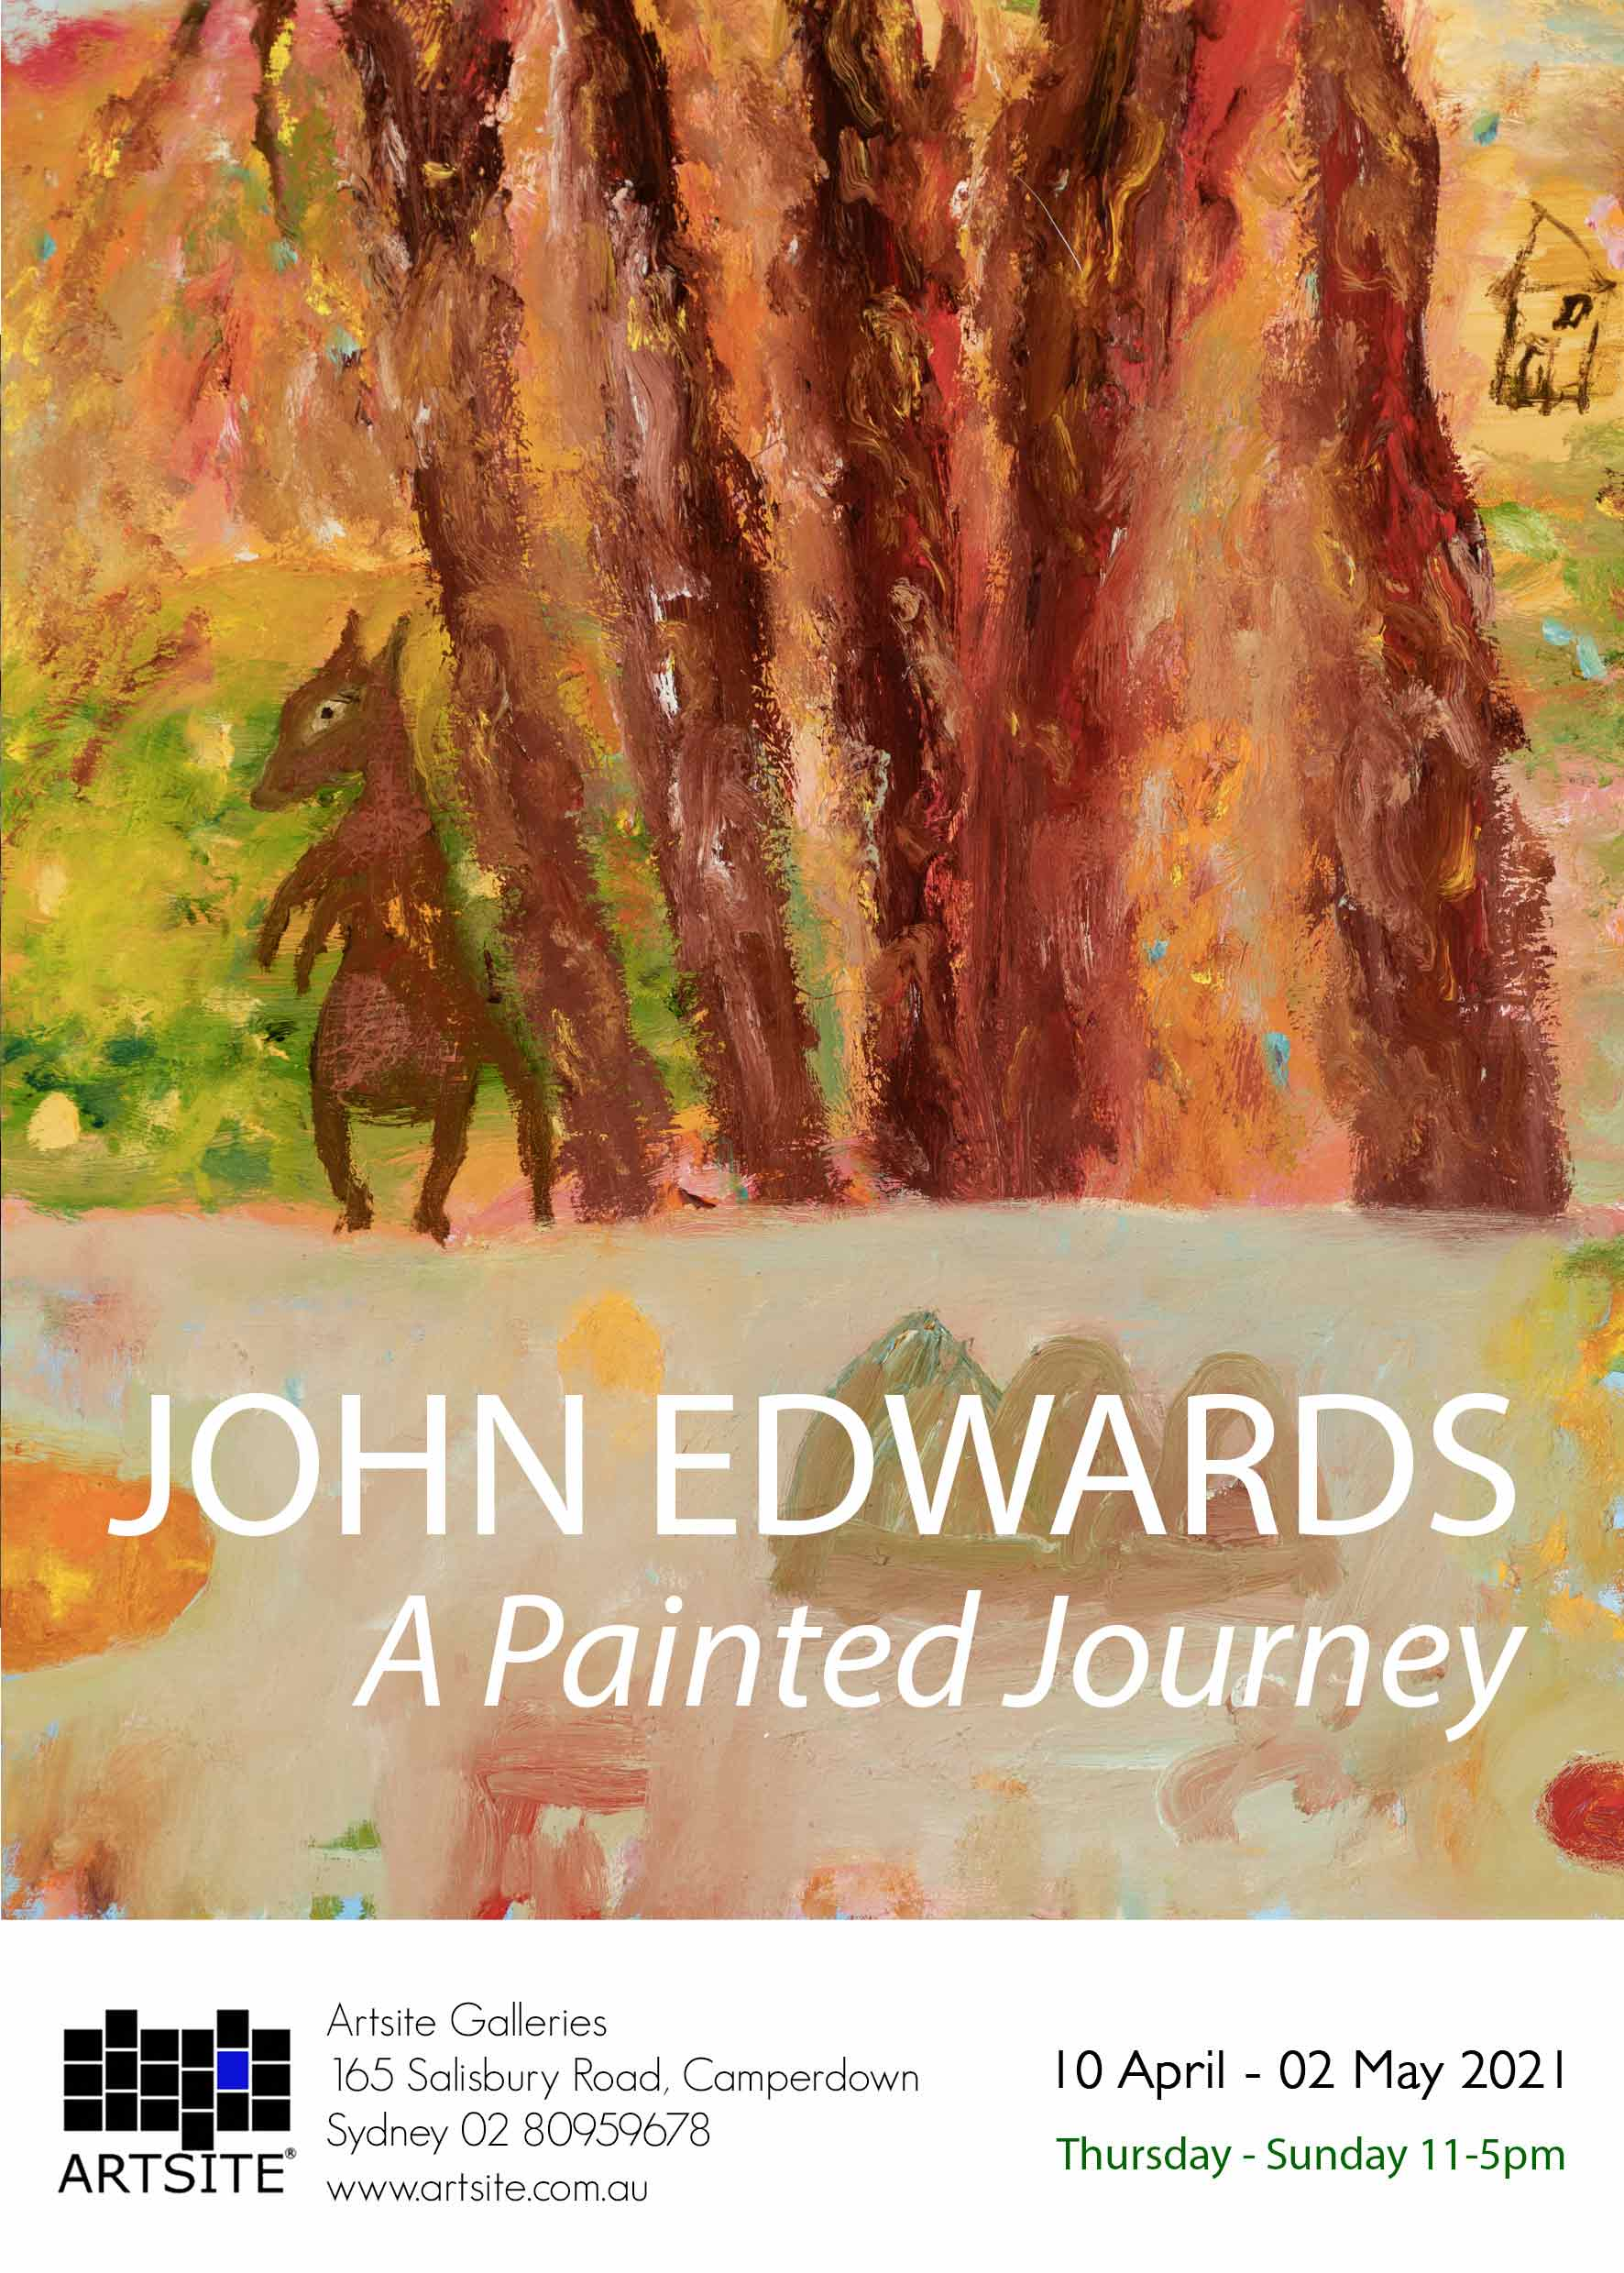 Artsite Galleries | A painted Journey | John Edwards | Solo Exhibition | Thursday - Sunday 11-5pm | 10 April-02 May  2021.